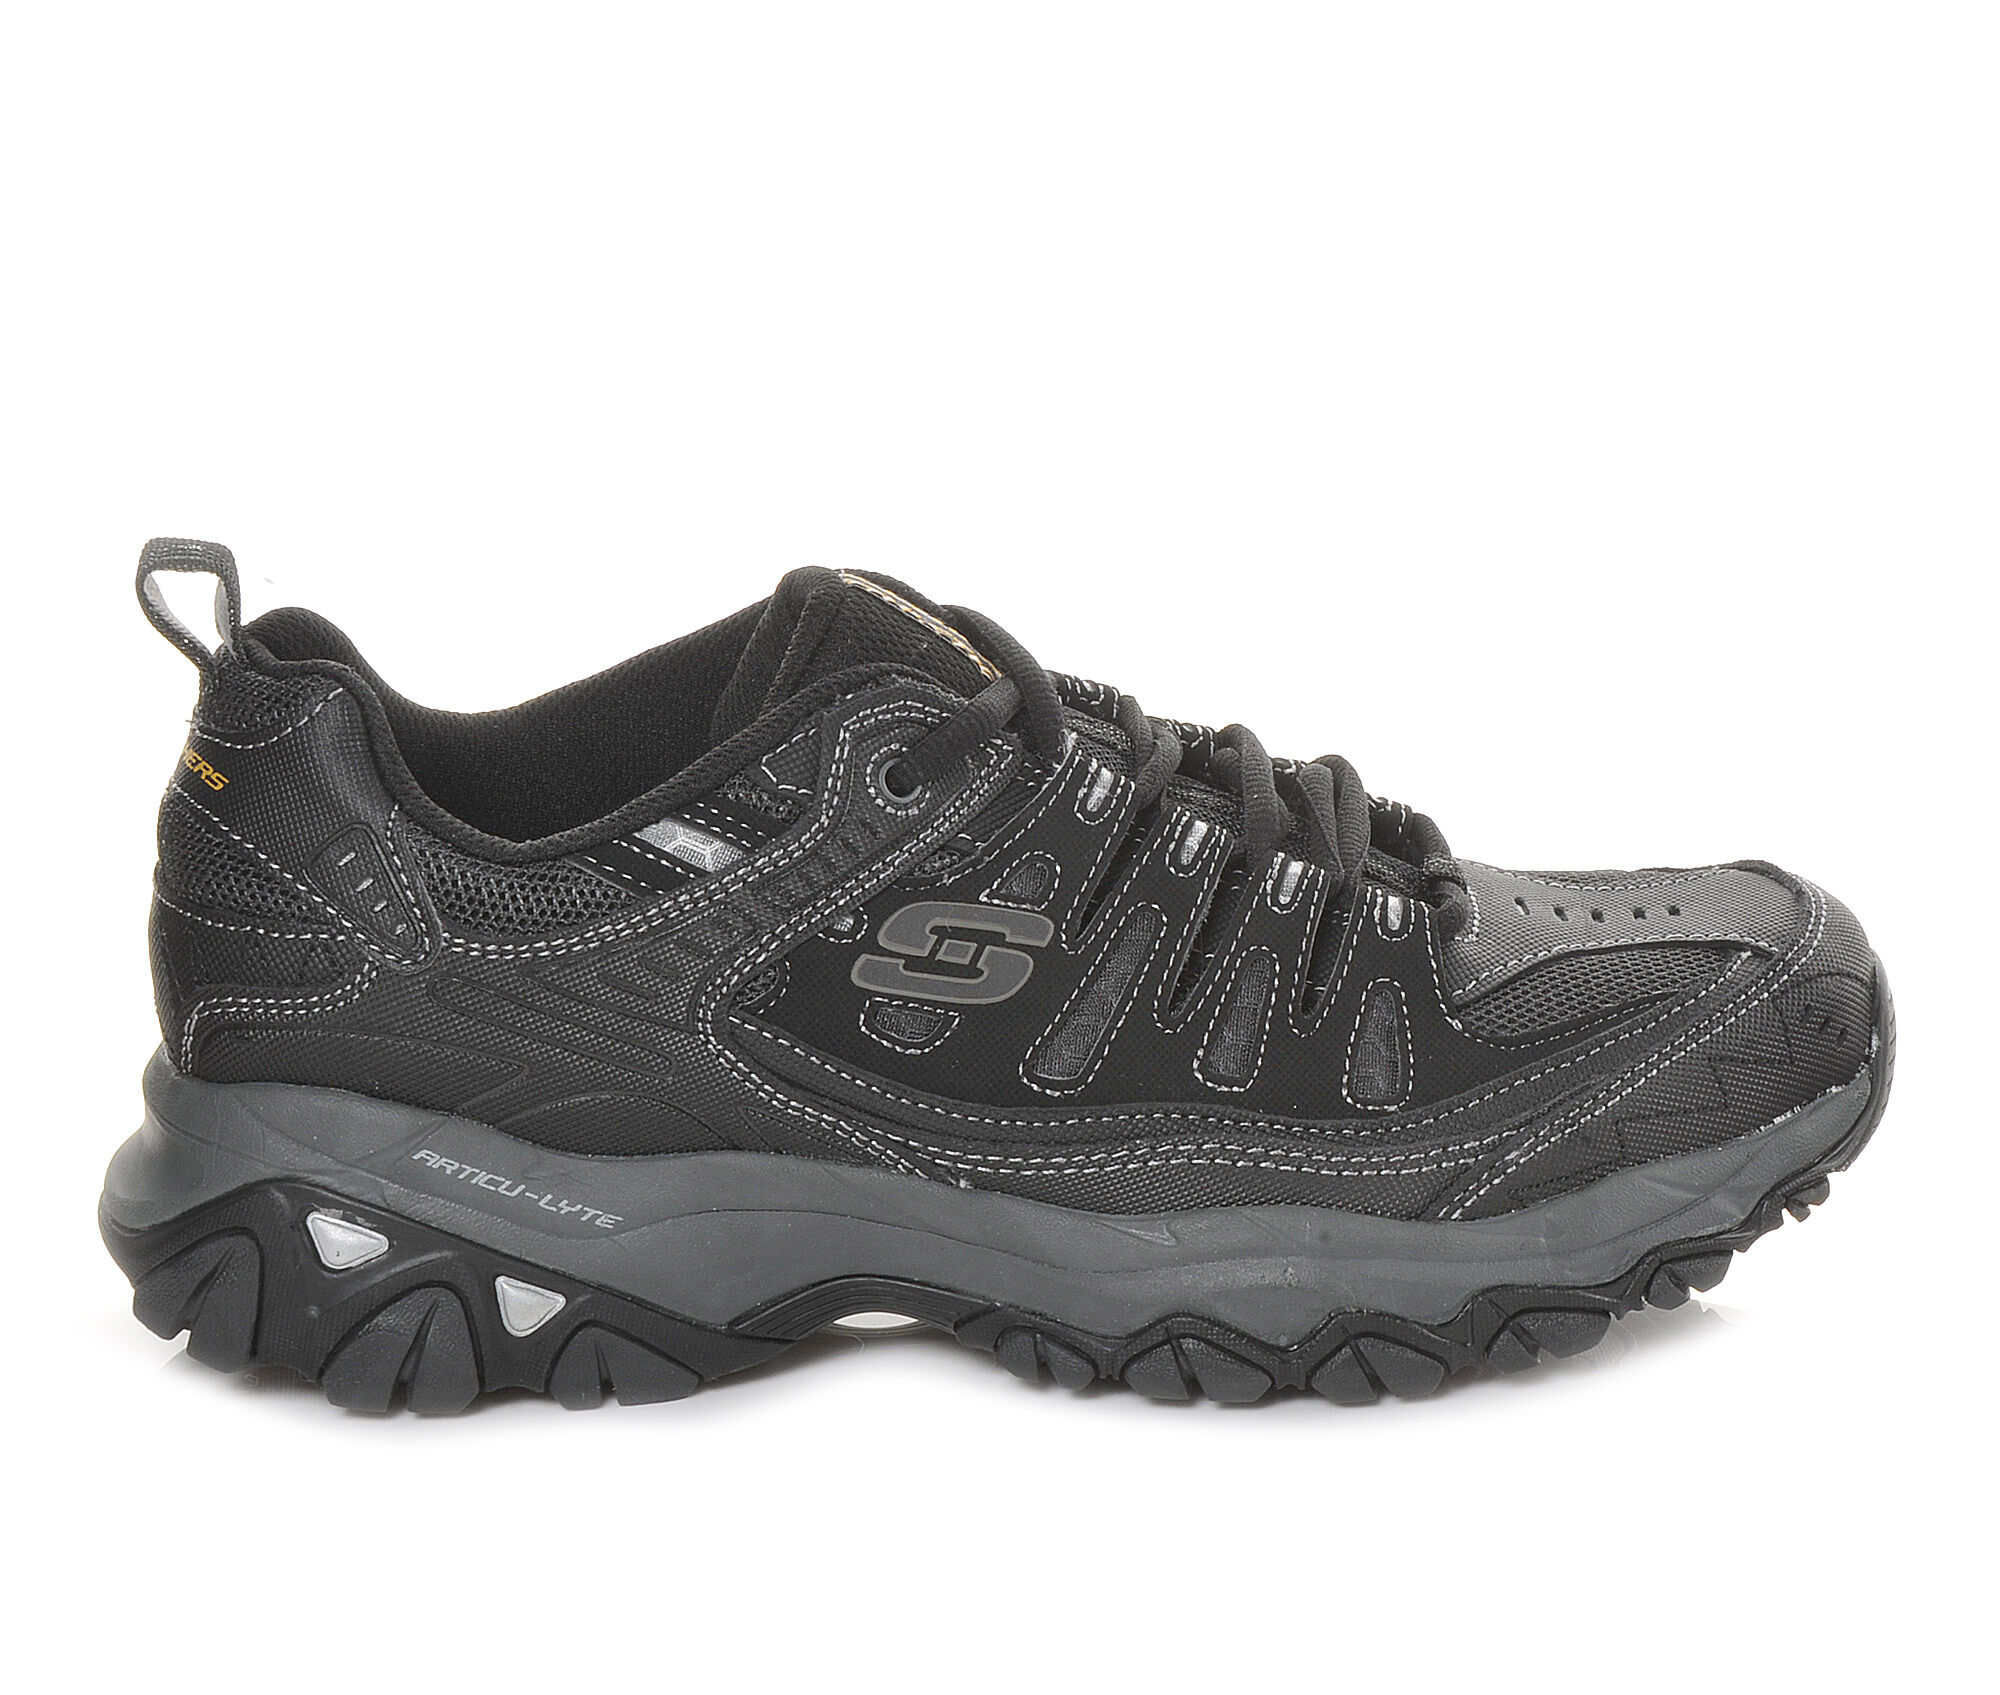 buy cheap new arrivals Men's Skechers Memory Fit 50125 Training Shoes Black/Grey